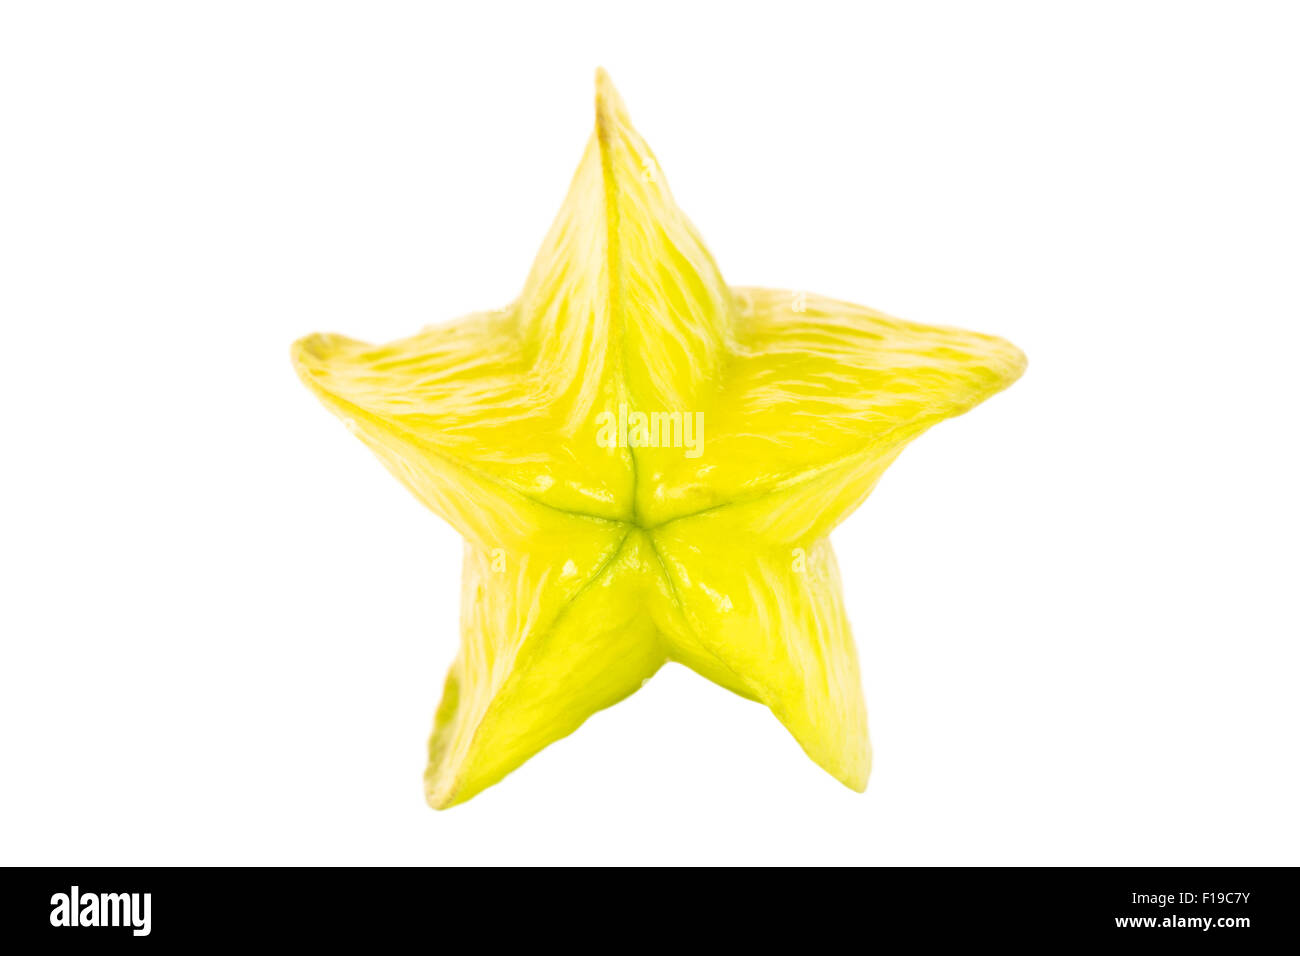 Close-up of a whole ripe carambola (starfruit), viewed from the front, isolated on white background. - Stock Image